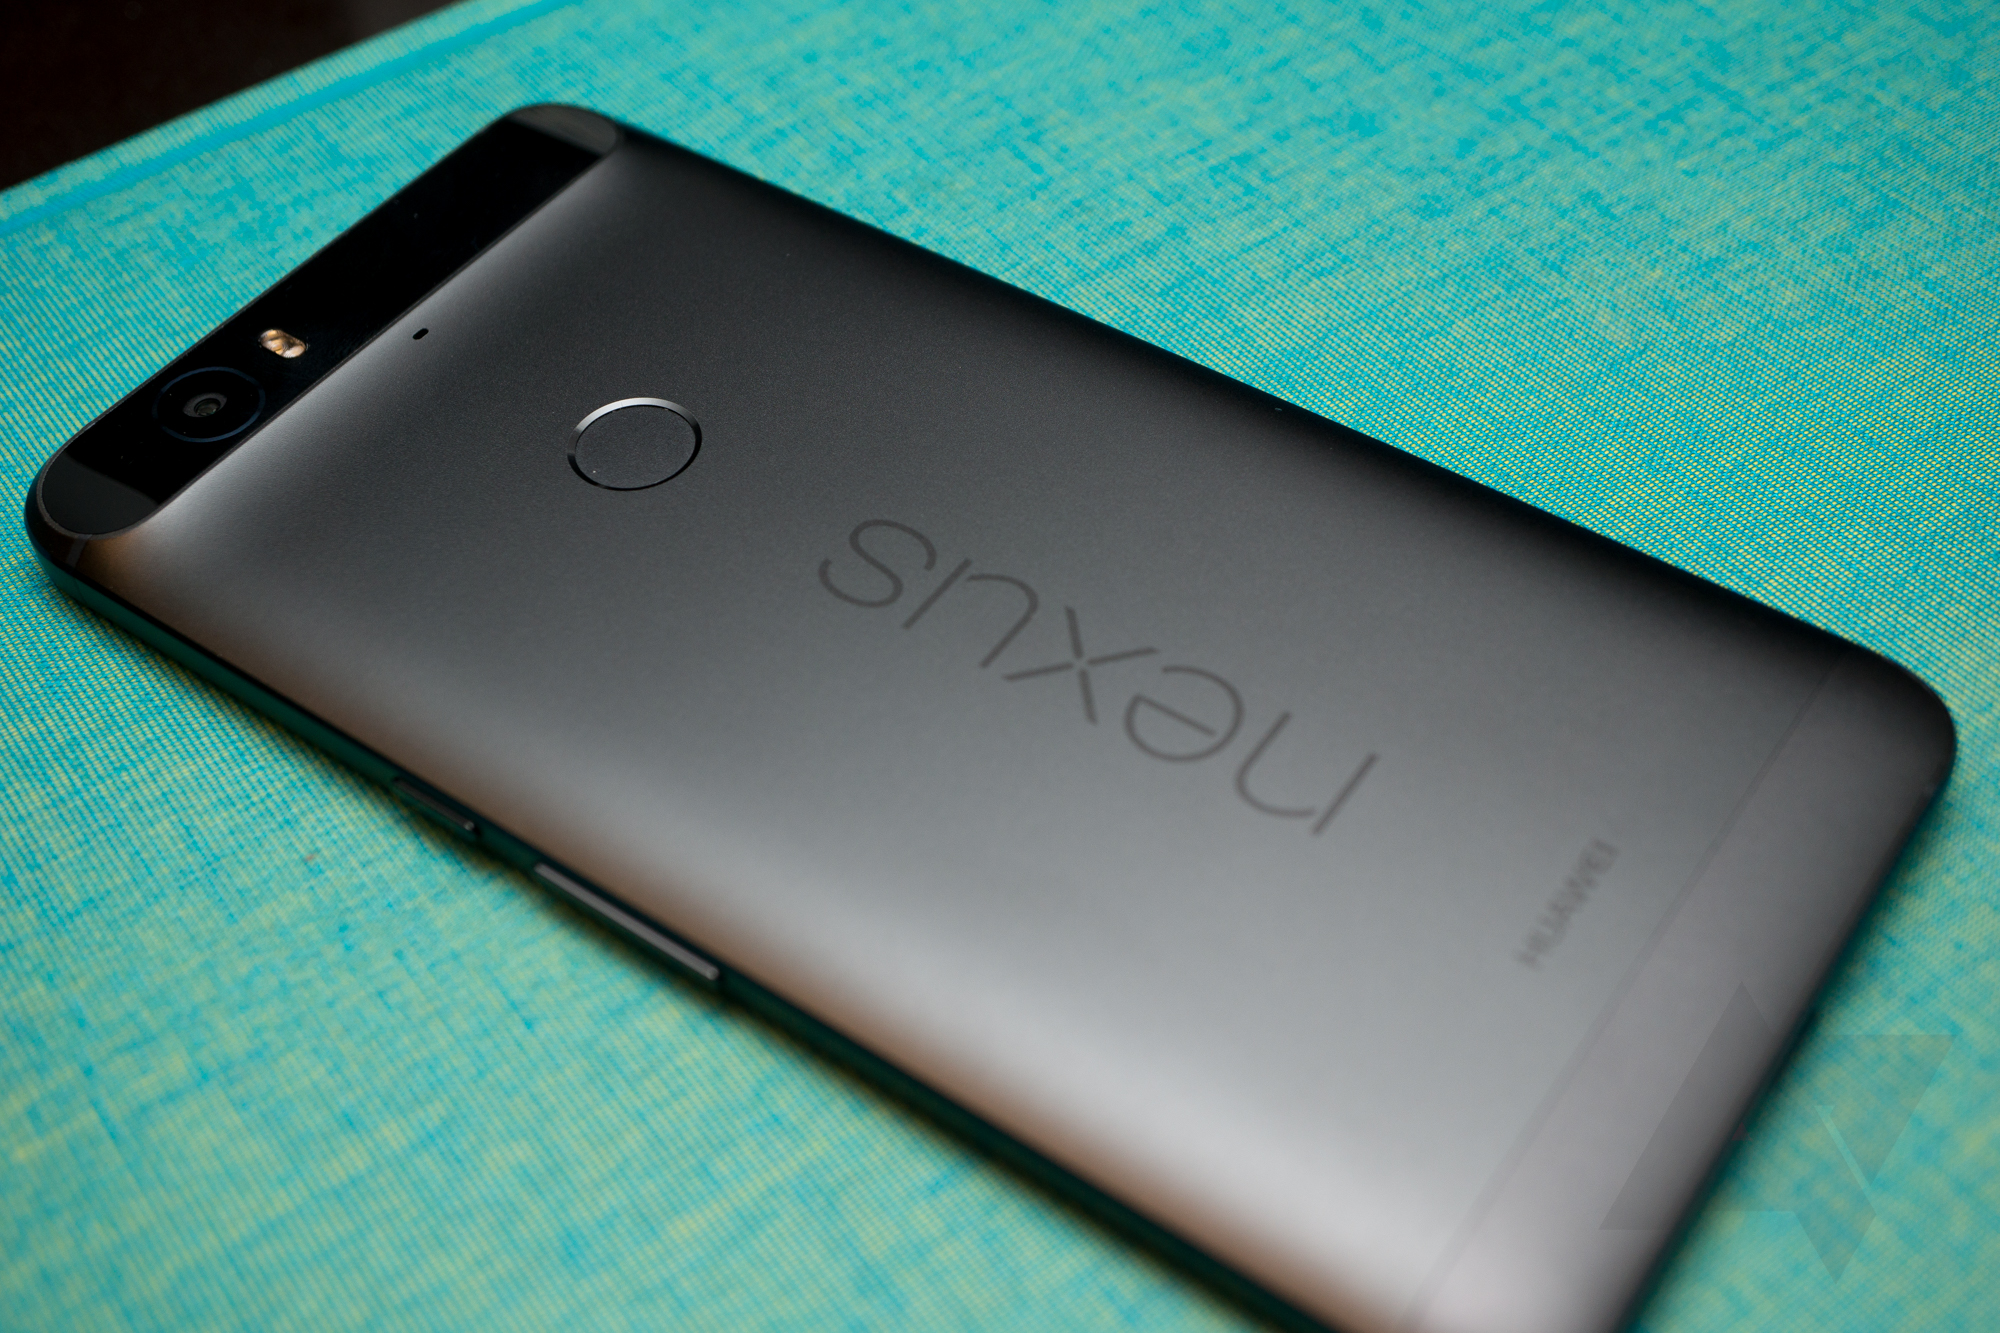 Updated] The Nexus 6P Is Getting An Update (MHC19I) With Performance